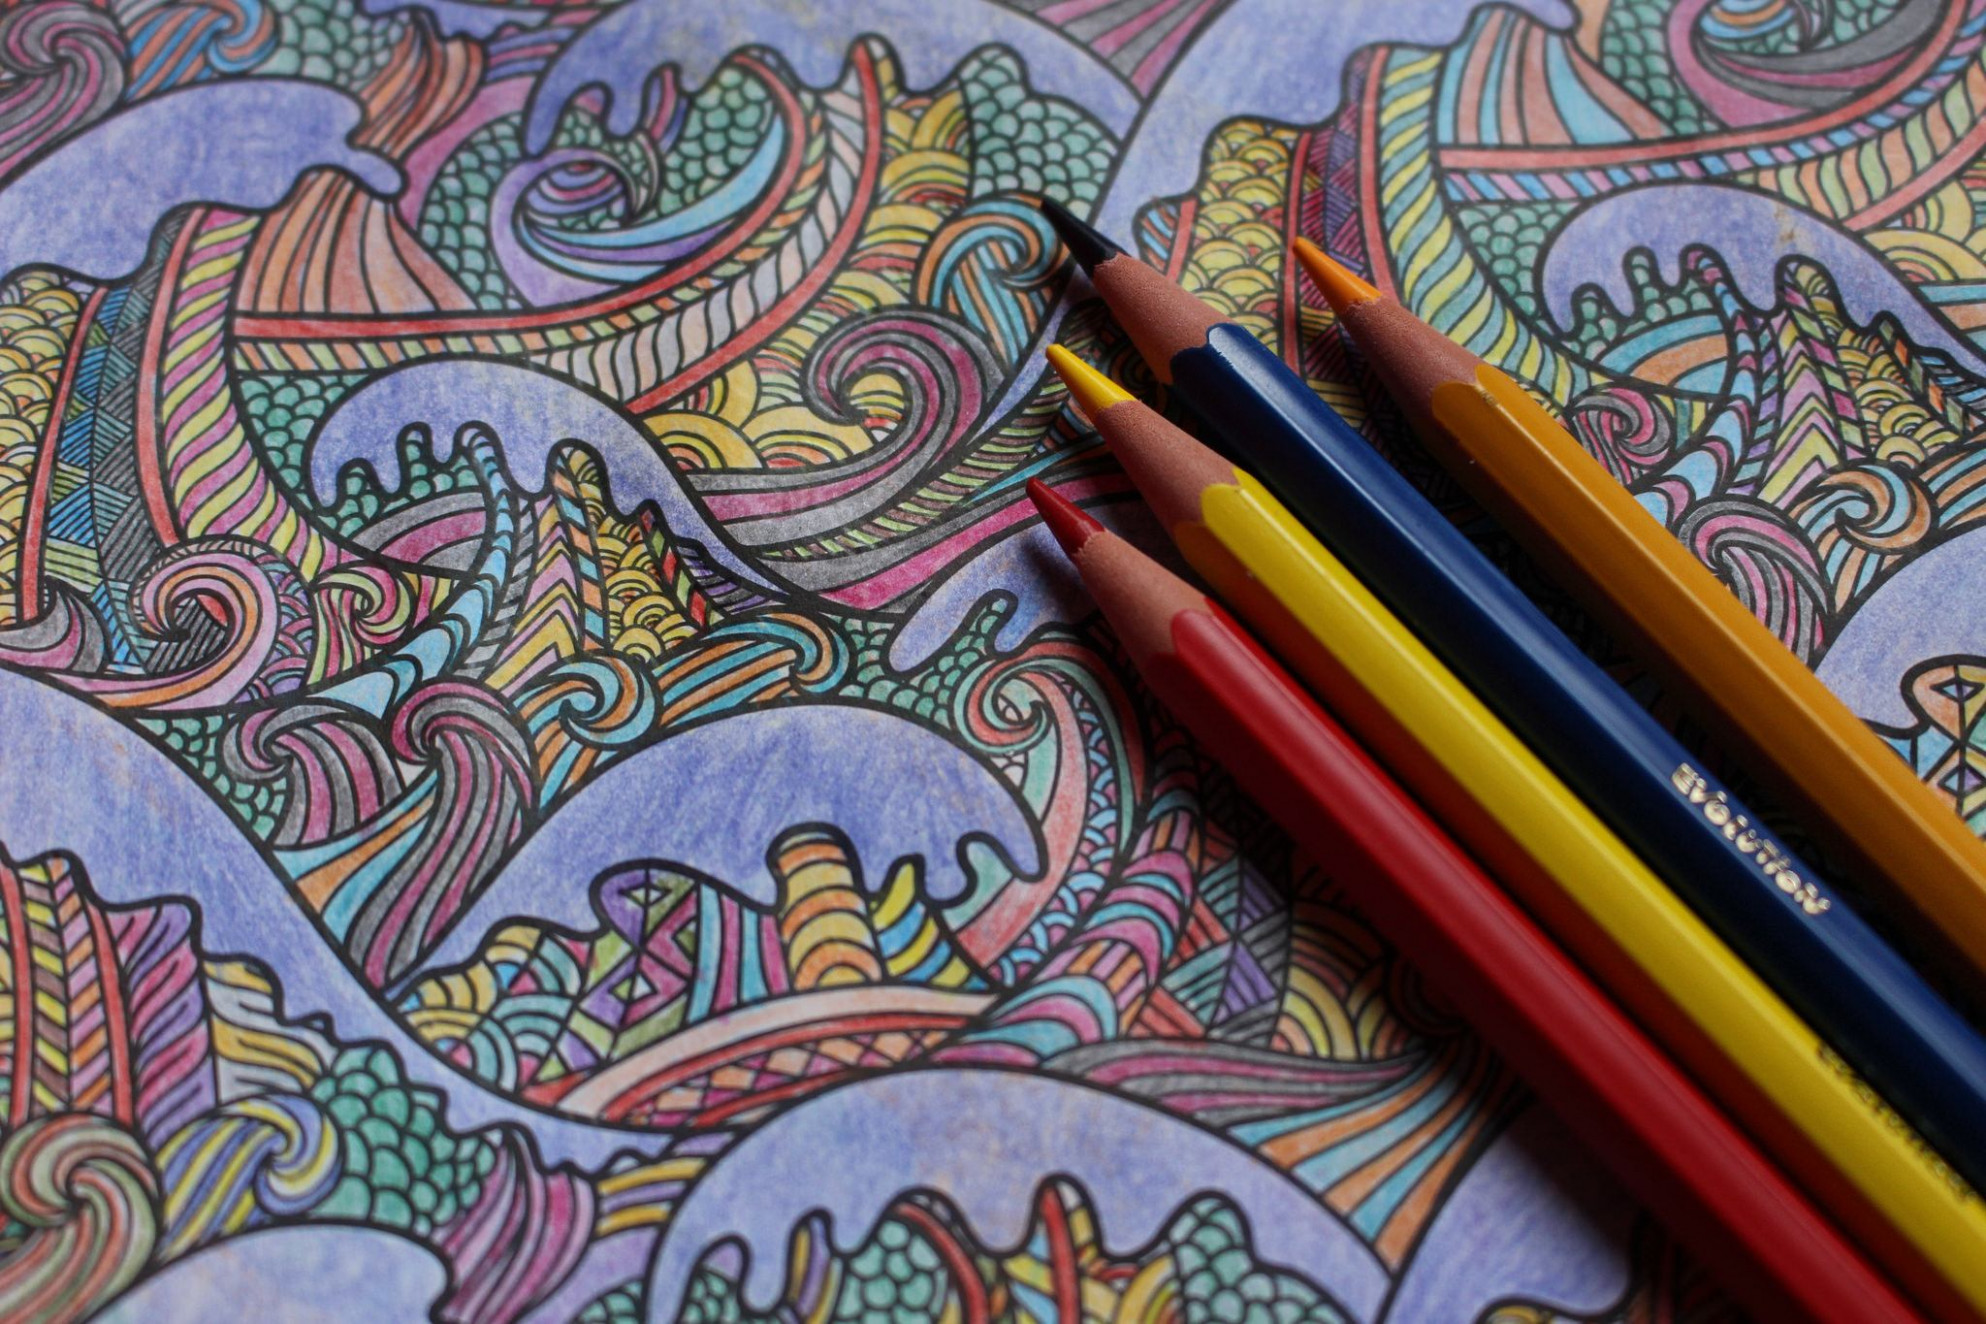 Coloring Books Are Perfect Gifts For Stressed-out Adults – is coloring book free